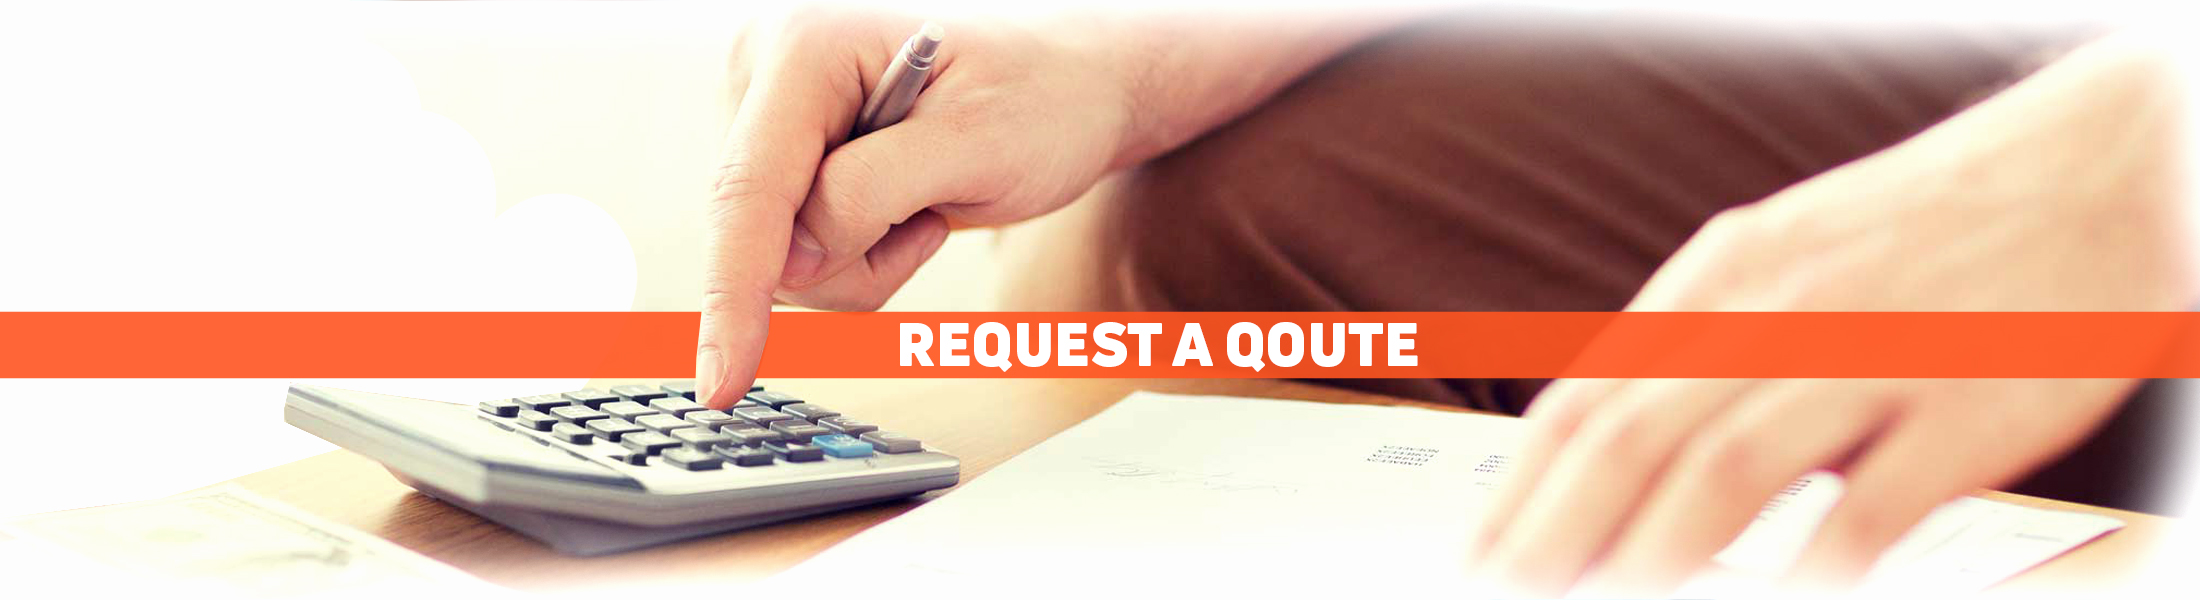 , Request a Quote